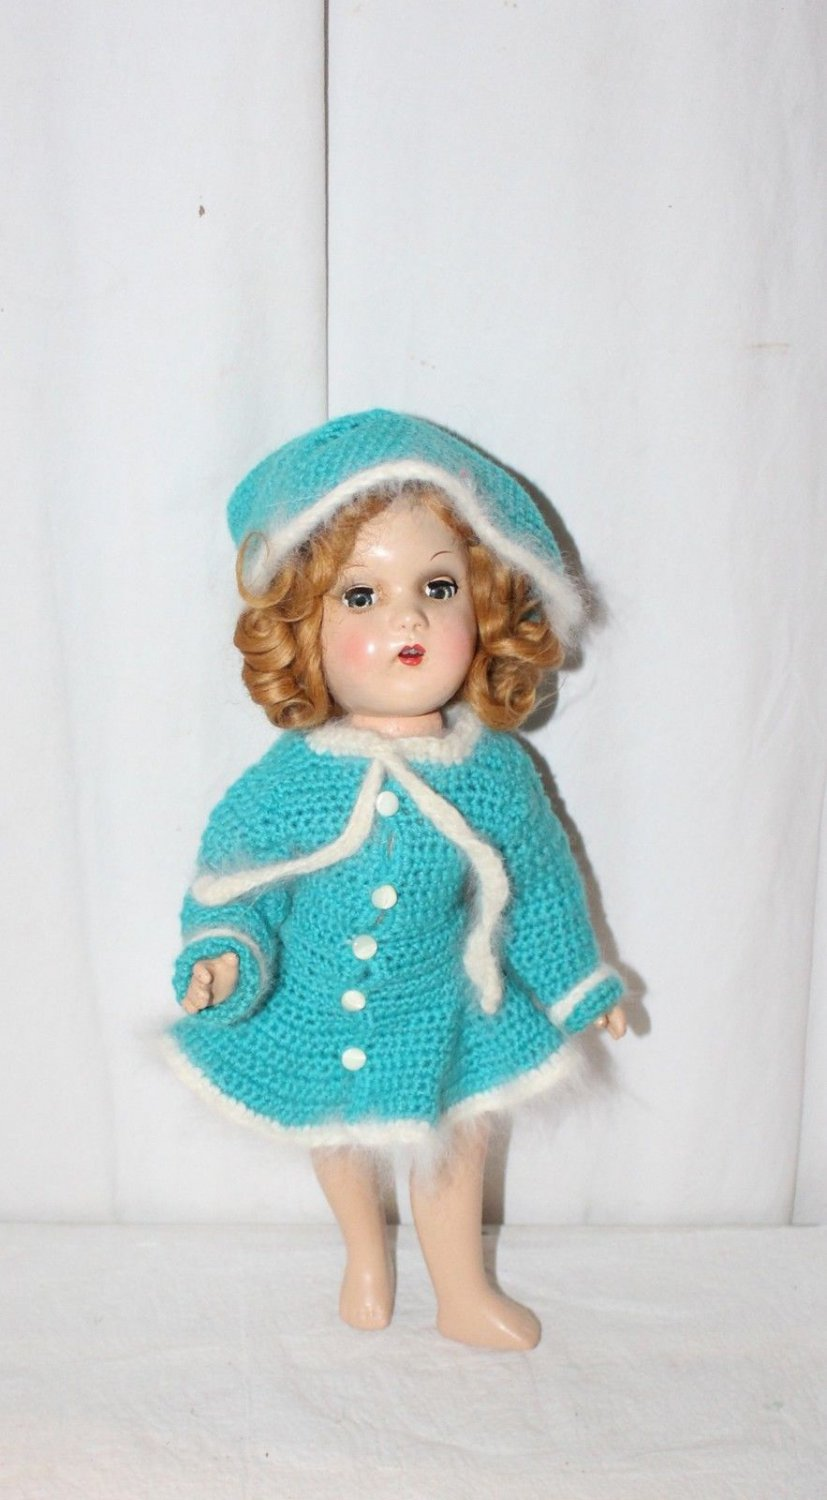 """VINTAGE TURQUOISE BLUE CROCHET KNIT SKATING OUTFIT FITS 14"""" MARY HOYER DOLL"""